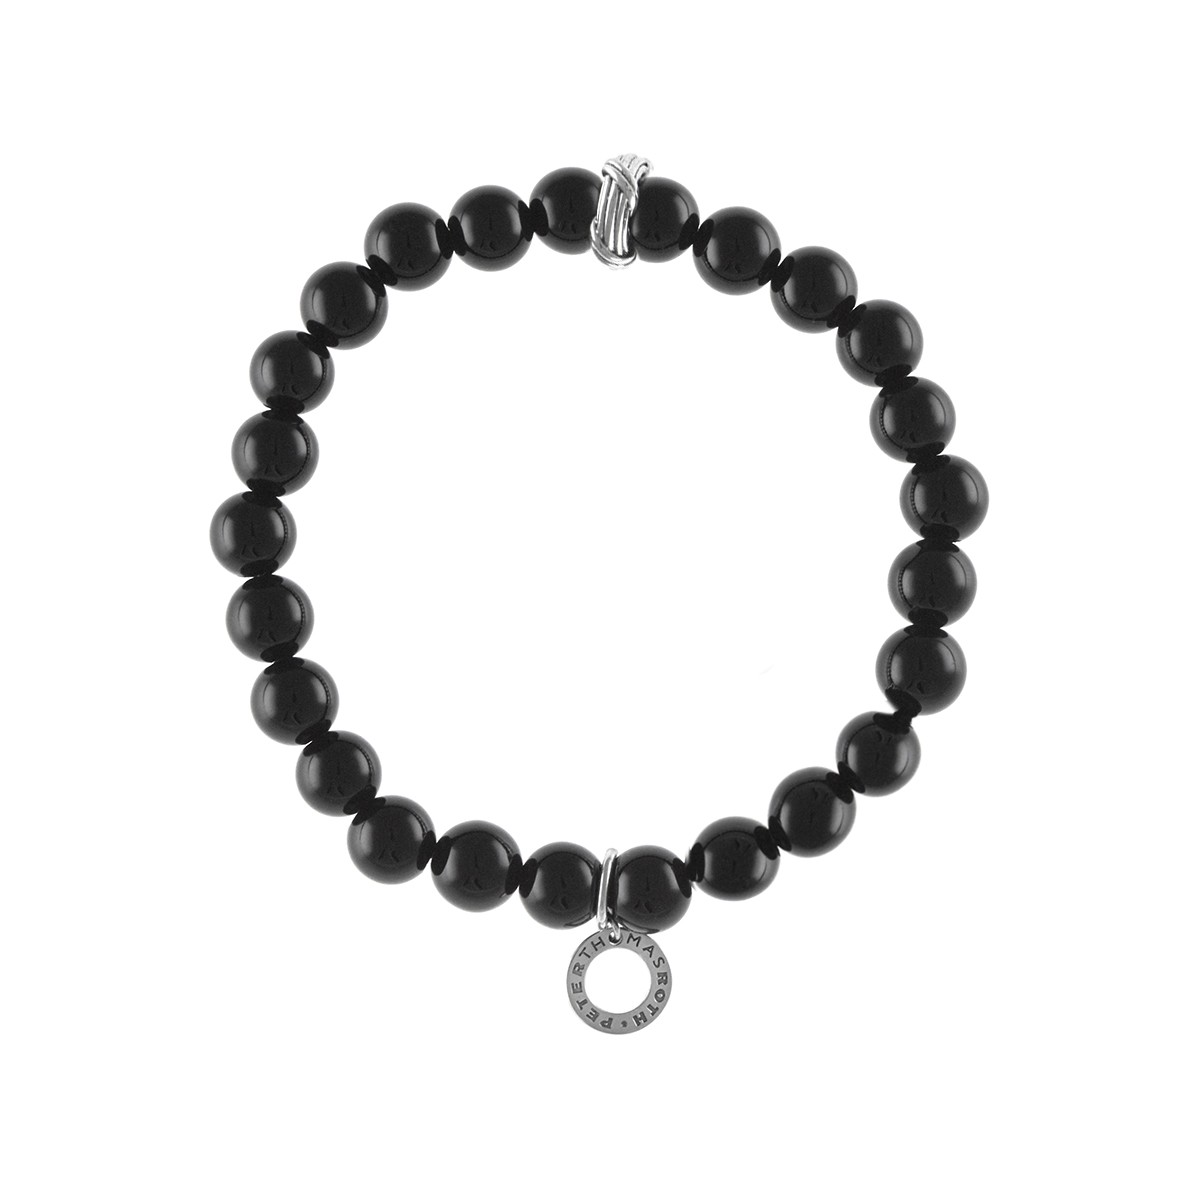 Explorer Bead Bracelet in sterling silver with black chalcedony